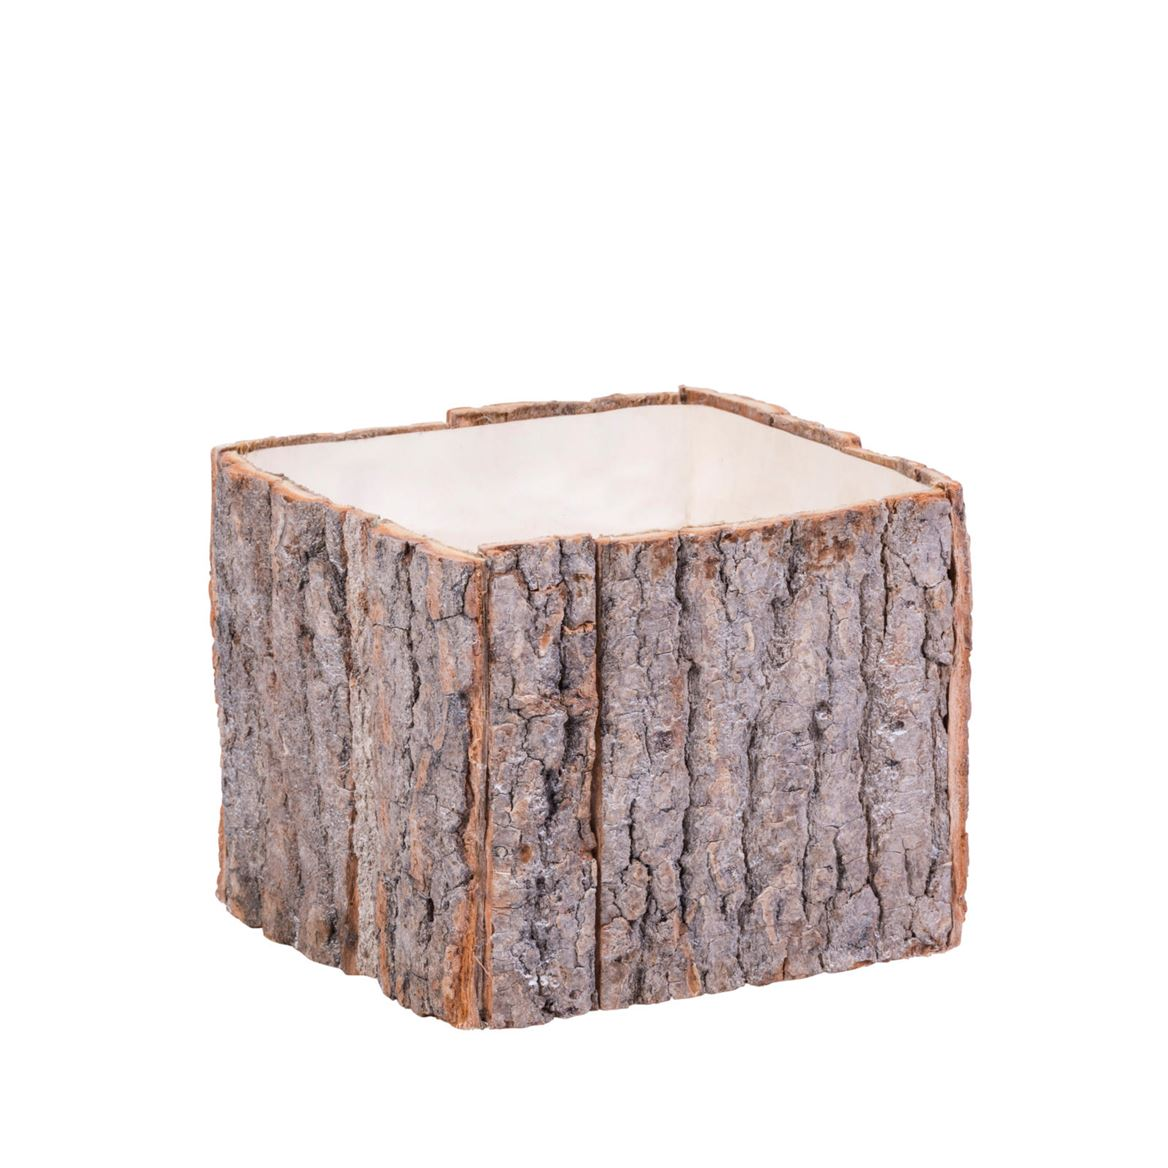 BARK Macetero natural A 13 x An. 13 x P 13 cm_bark-macetero-natural-a-13-x-an--13-x-p-13-cm